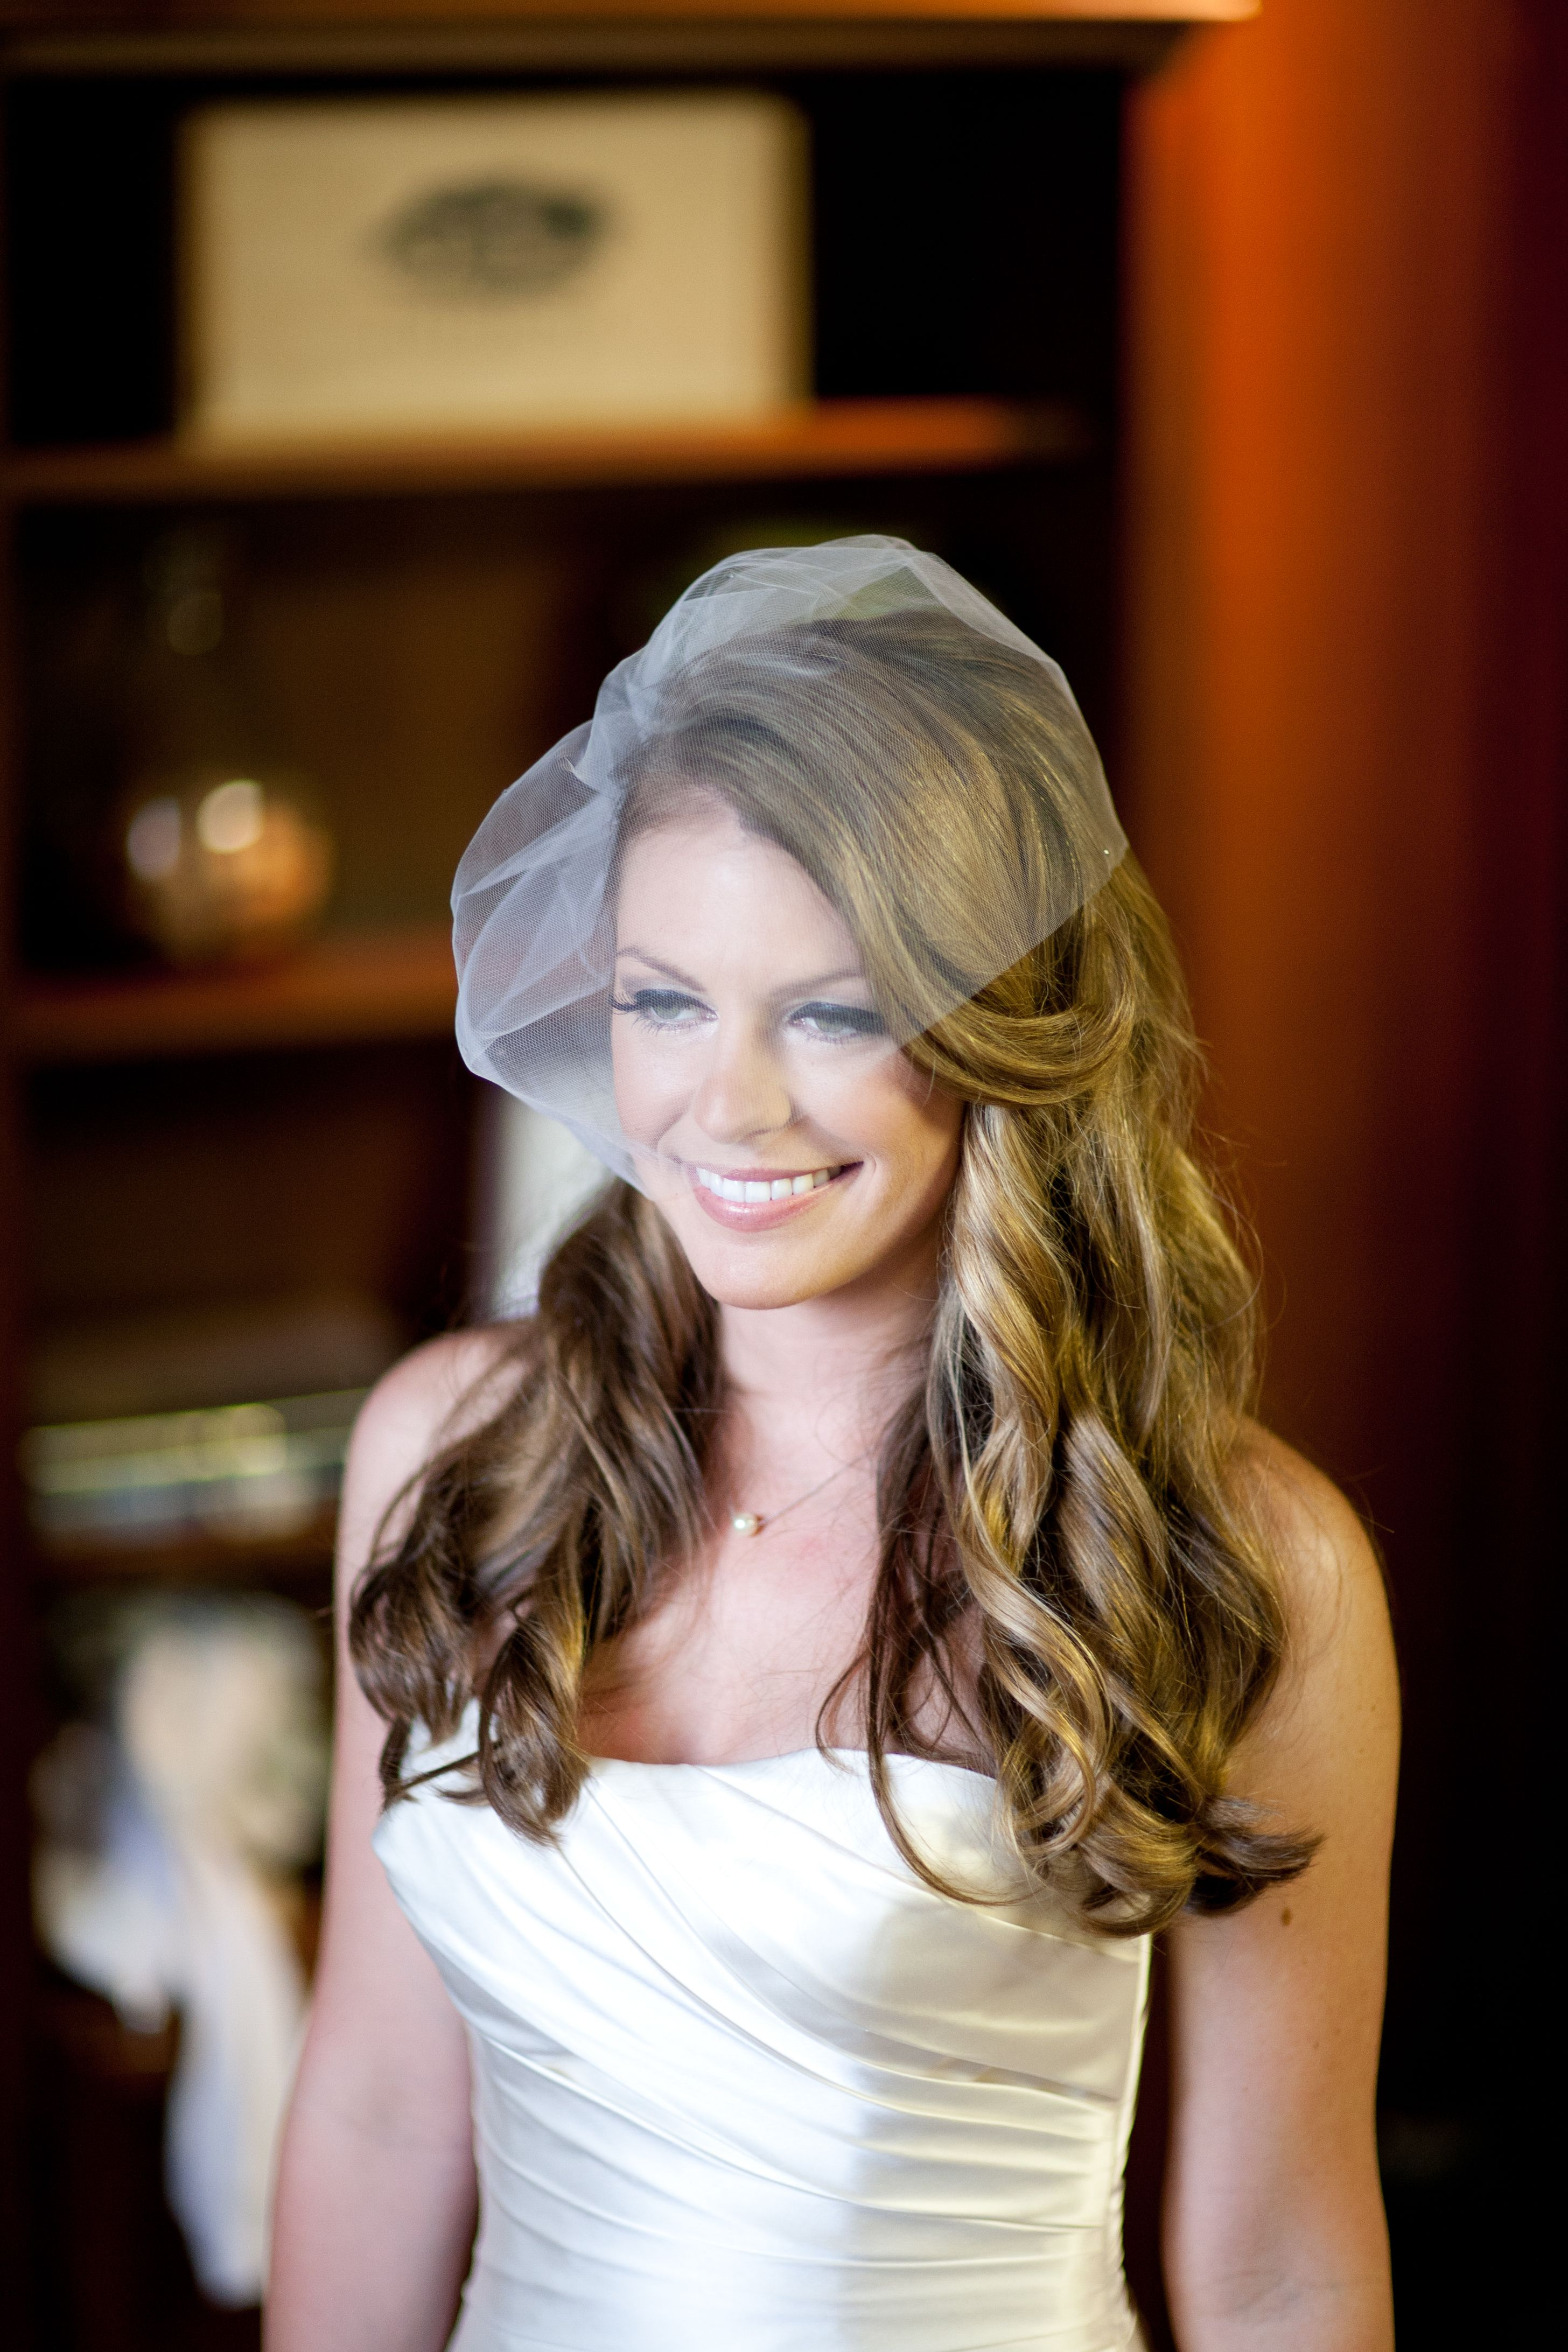 loose curls, birdcage veil old hollywood hair and makeup